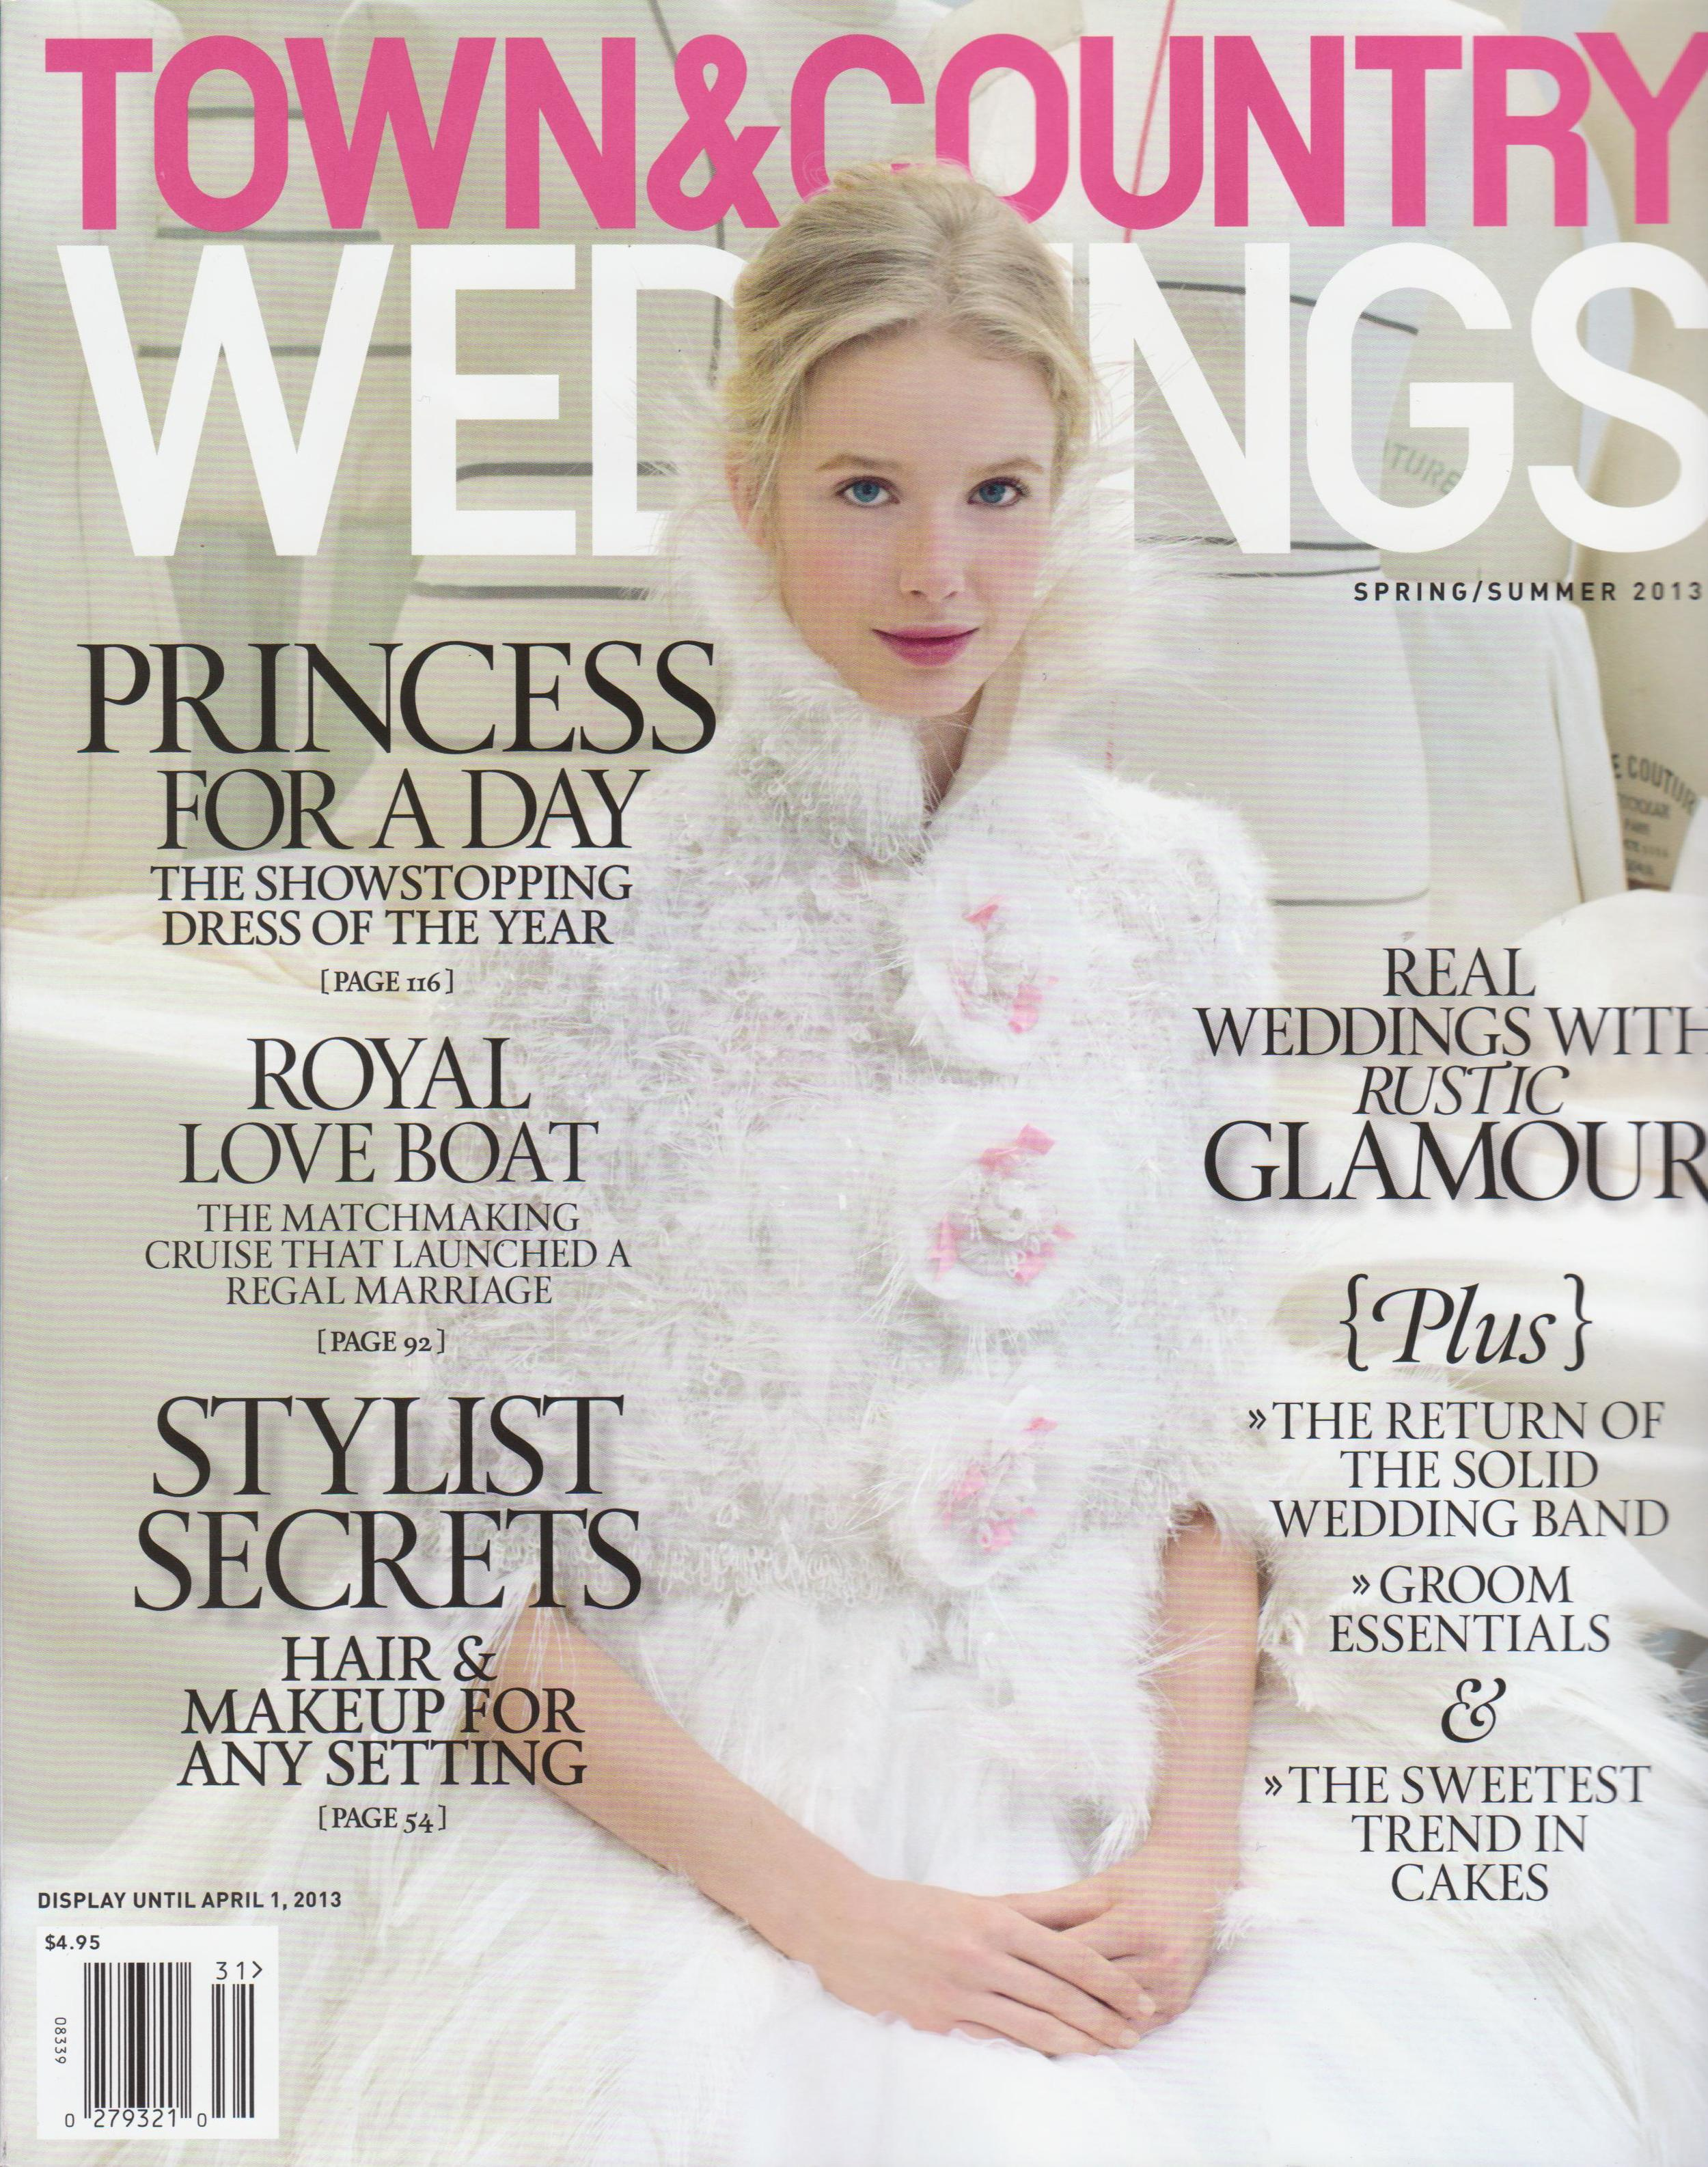 town-and-country-weddings-magazine.jpg